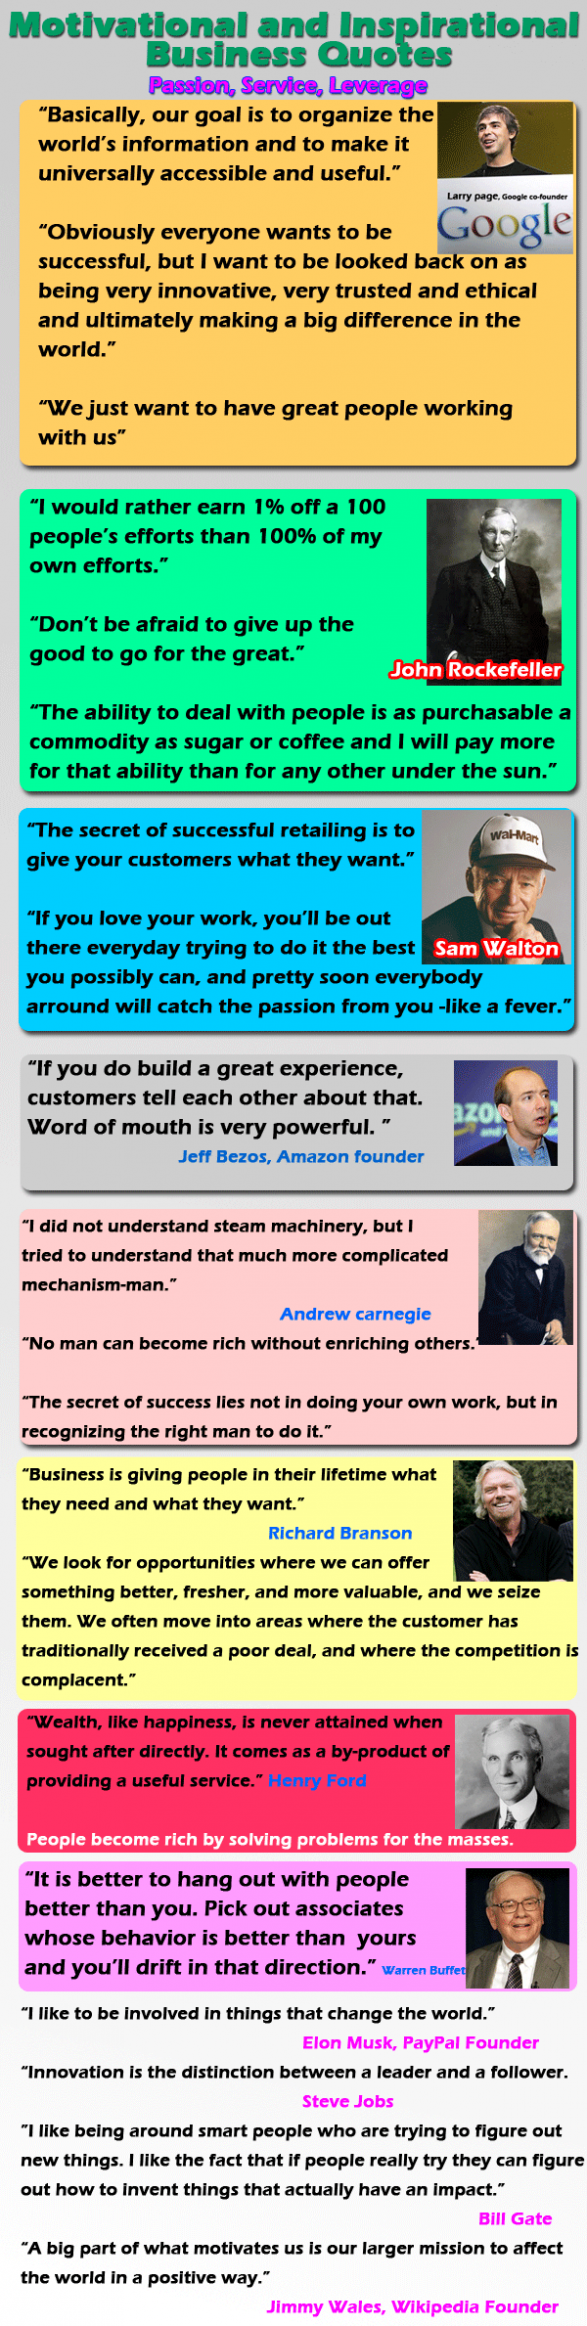 Most Inspirational Business Quotes & Best Motivational Life Quotes